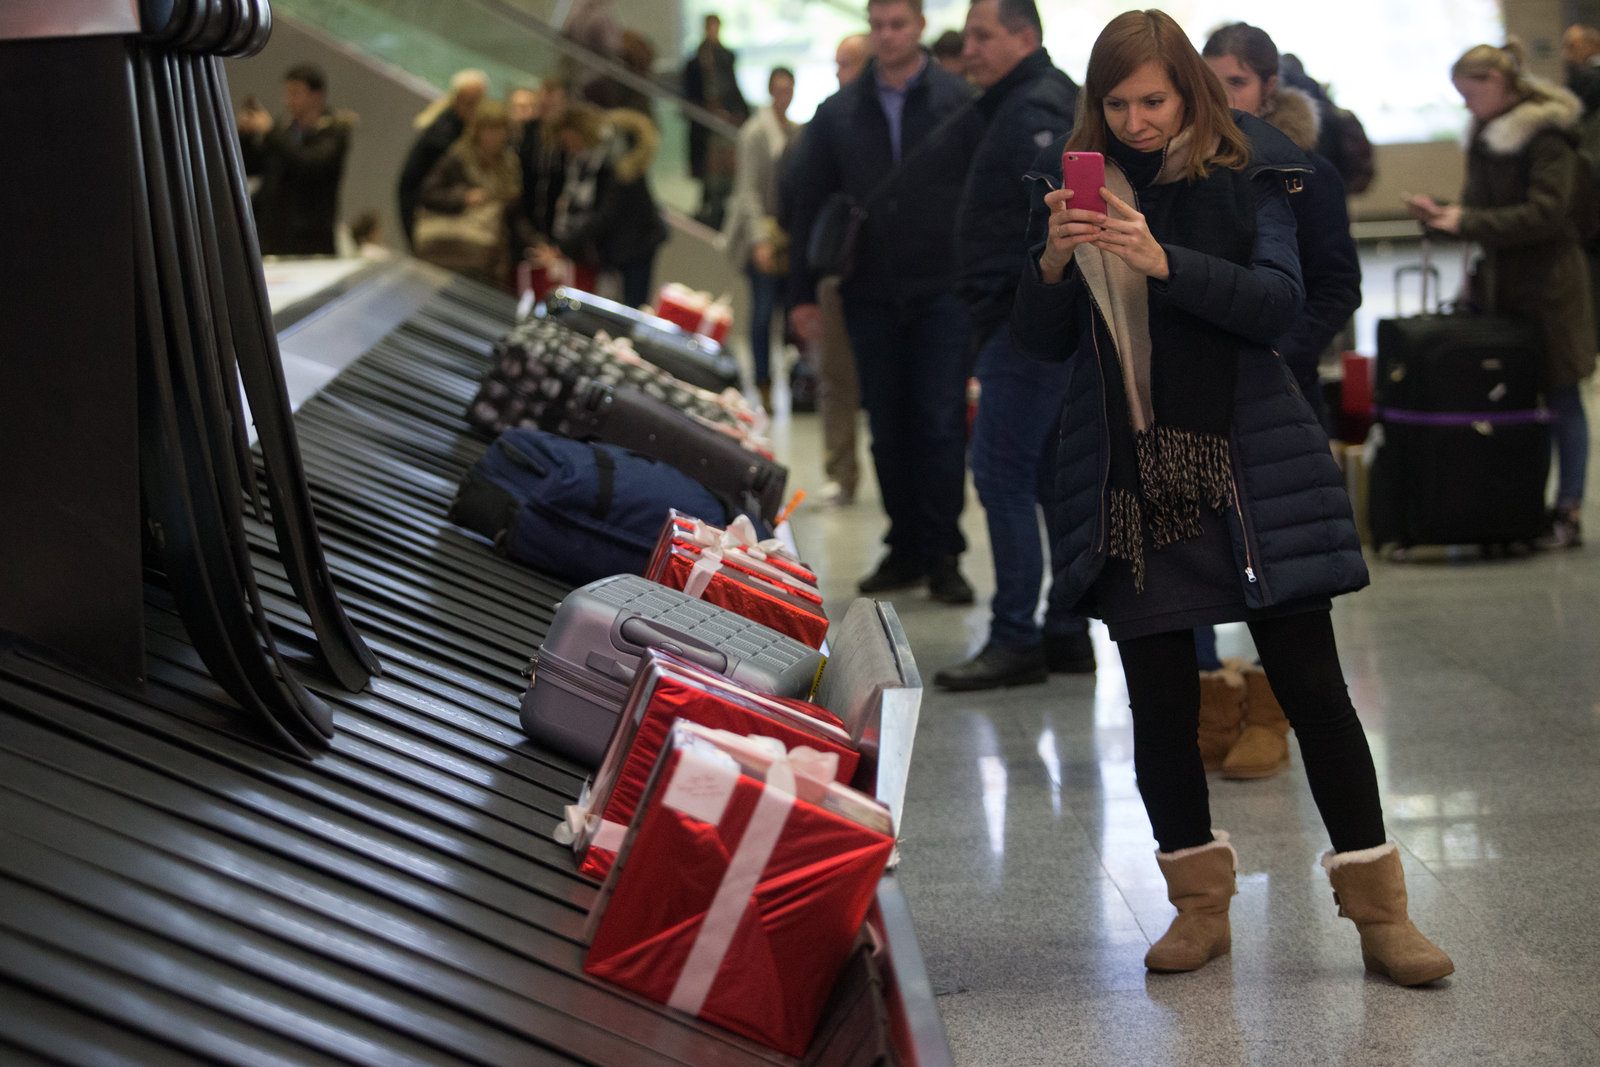 Presents on airport conveyer belt with baggage